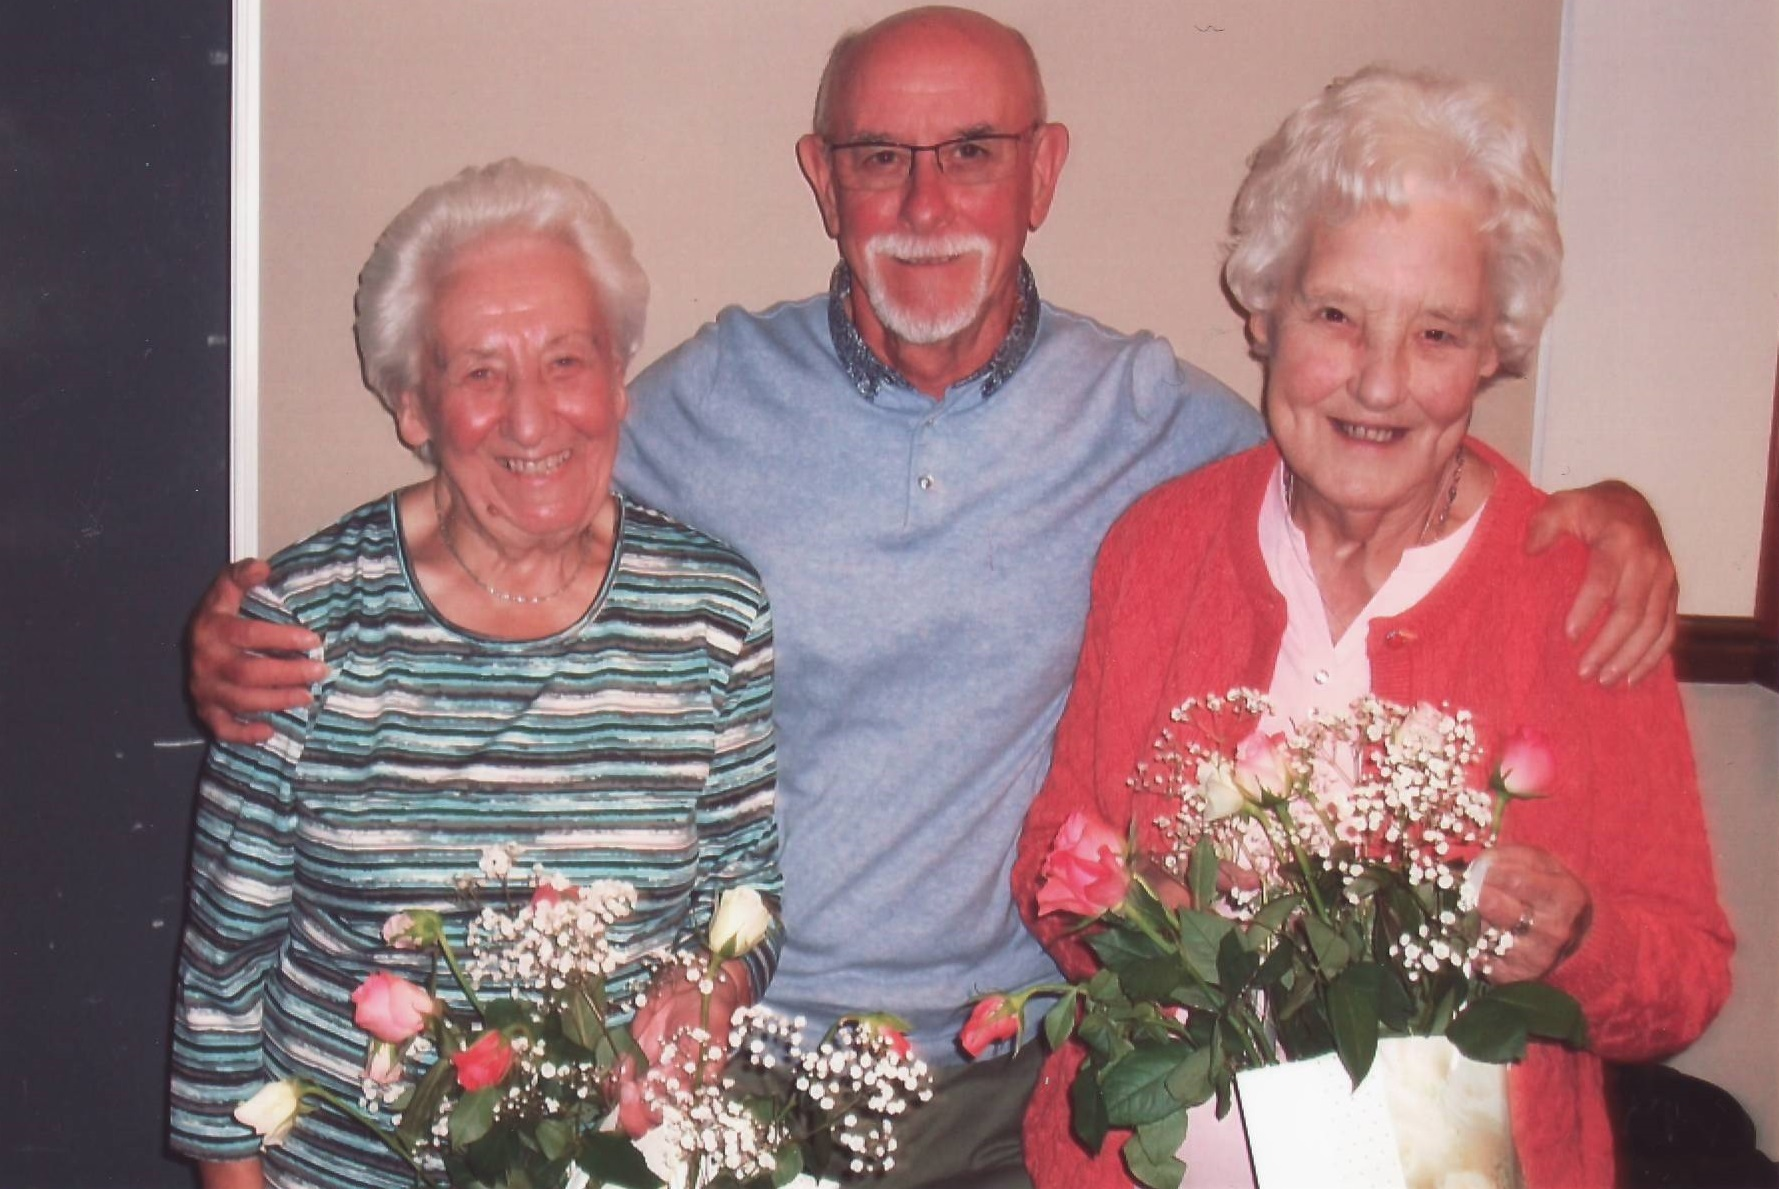 Avsed volunteers Joyce Heslop, Colin Wrigg and Dorothy Downs who received bouquets to thank them for their work